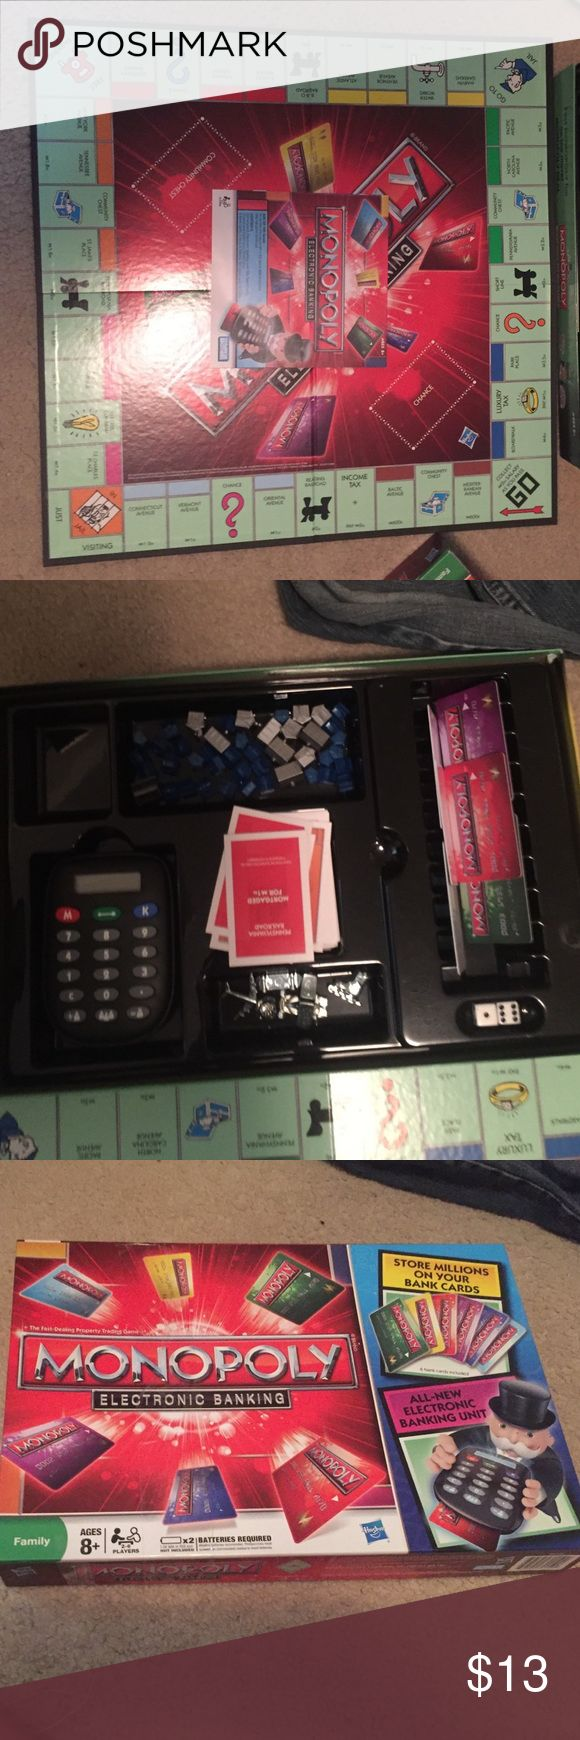 Monopoly electronic banking 6 bank cards a banking unit and its in good condition Monopoly Other